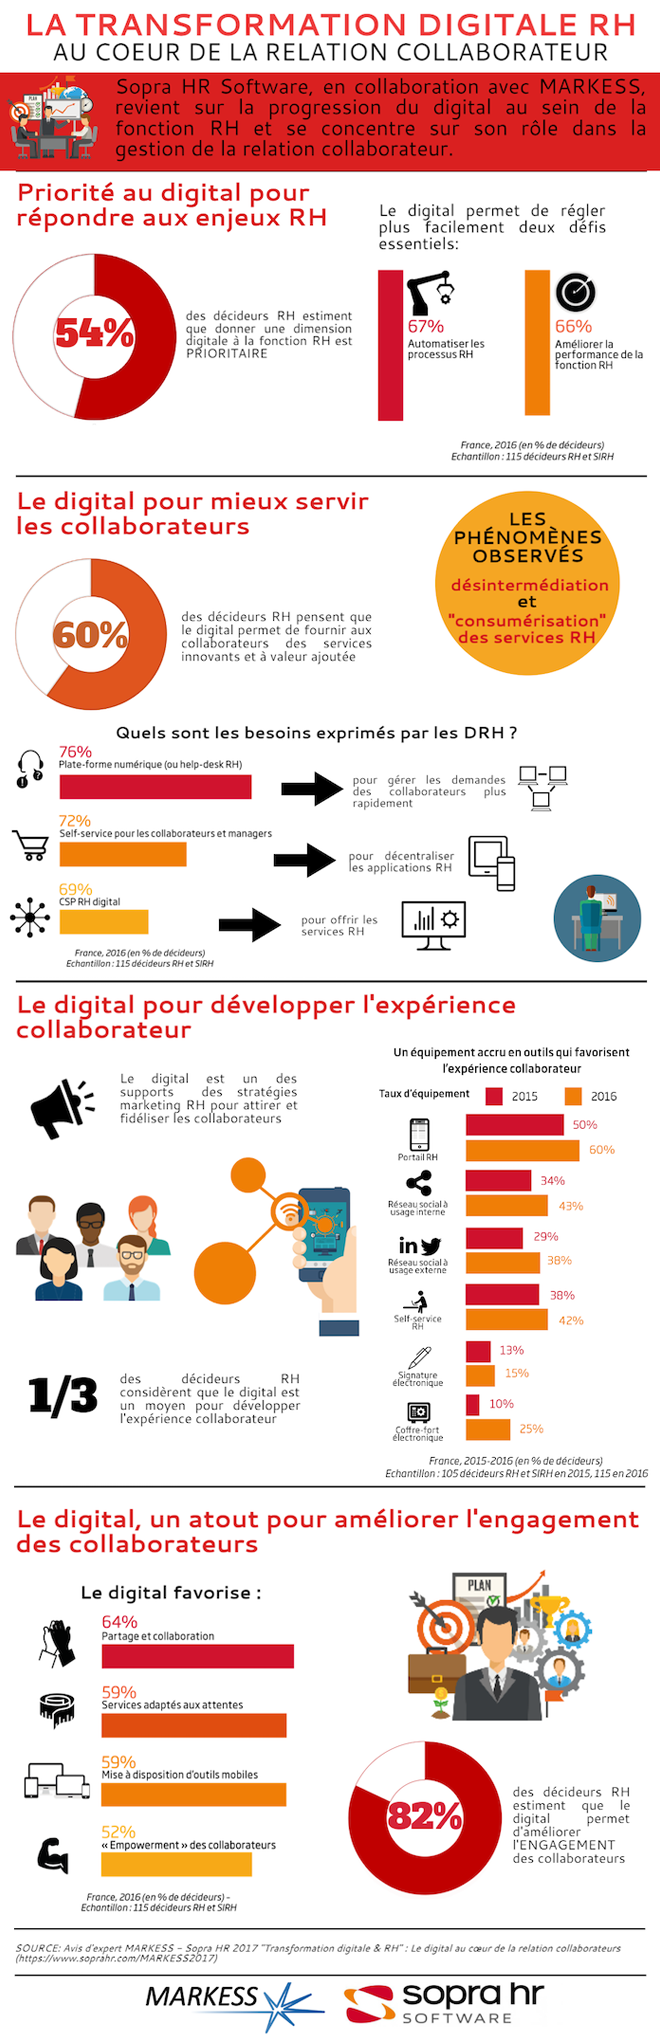 De l'influence du digital sur la relation collaborateur